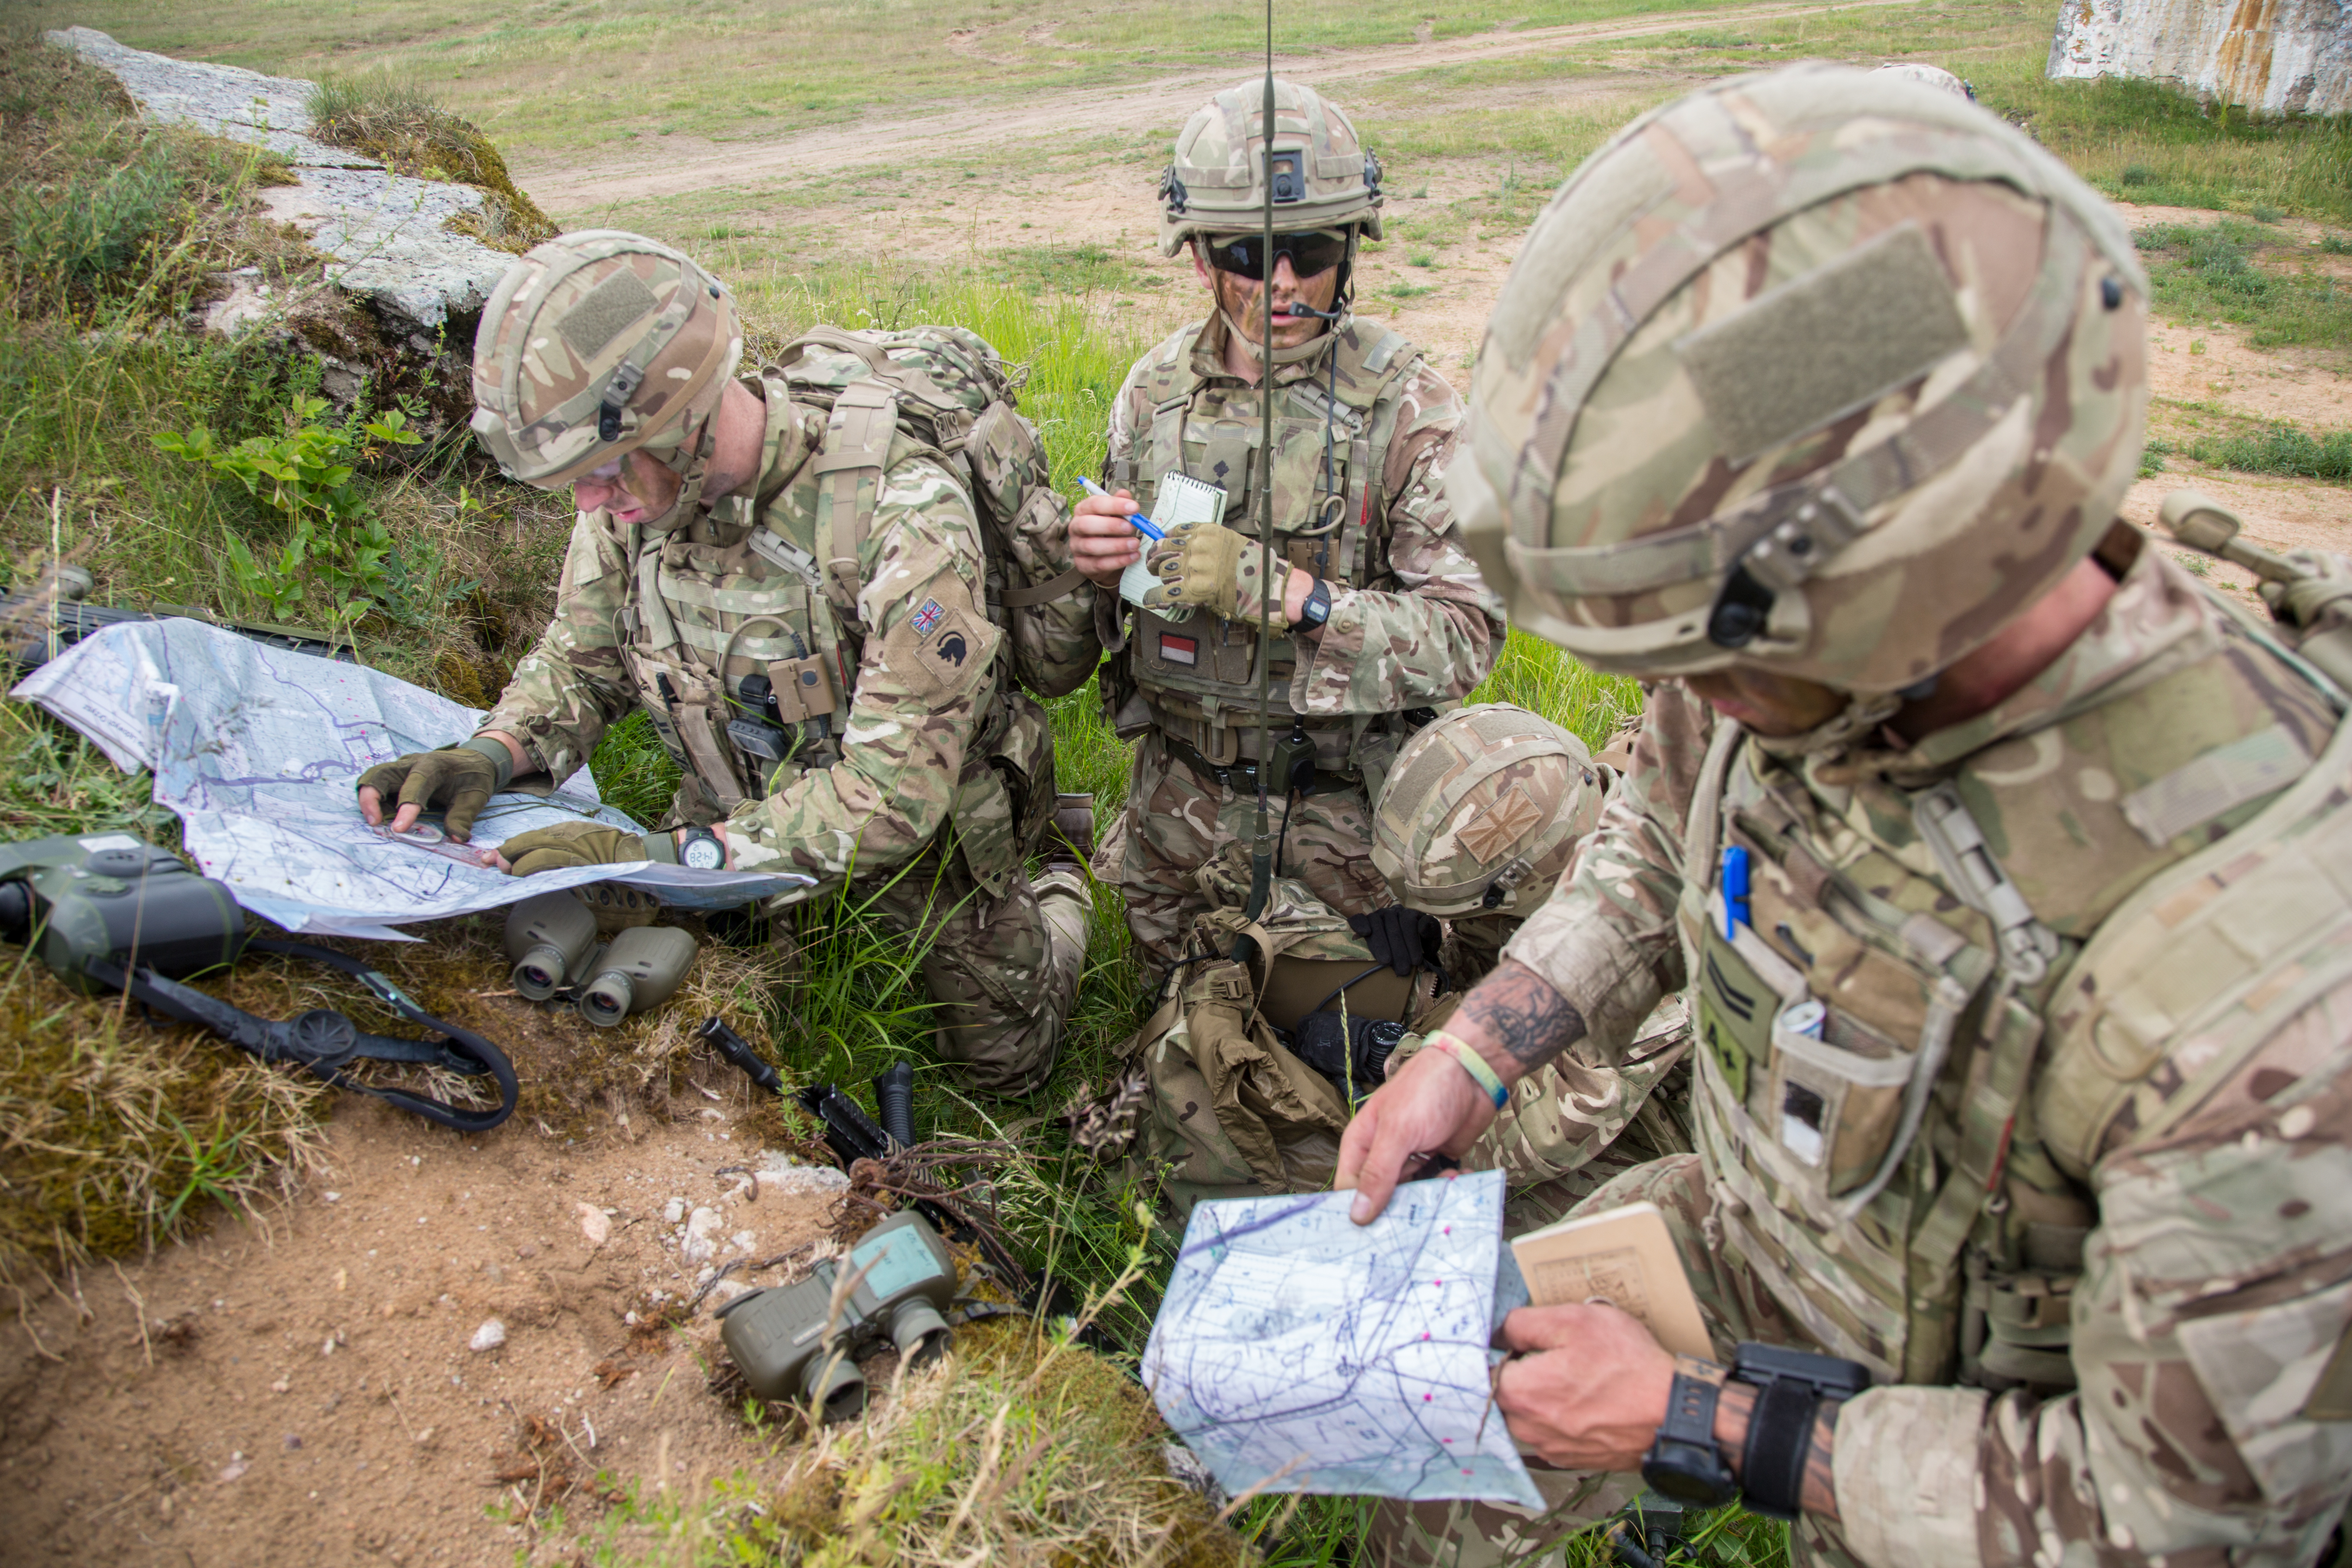 British Soldiers review maps to update coordinates and locate their positions during the Fire Support Coordination Exercise as part of the Saber Strike exercise at the Bemowo Piskie Training Area in Bemowo Piskie, Poland, June 6, 2017. The Saber Strike exercise facilitates cooperation and improves joint operational capability in a variety of missions and prepares the participating nations and units for future operations while enhancing the NATO alliance. (U.S. Army photo by Spc. Stefan English)